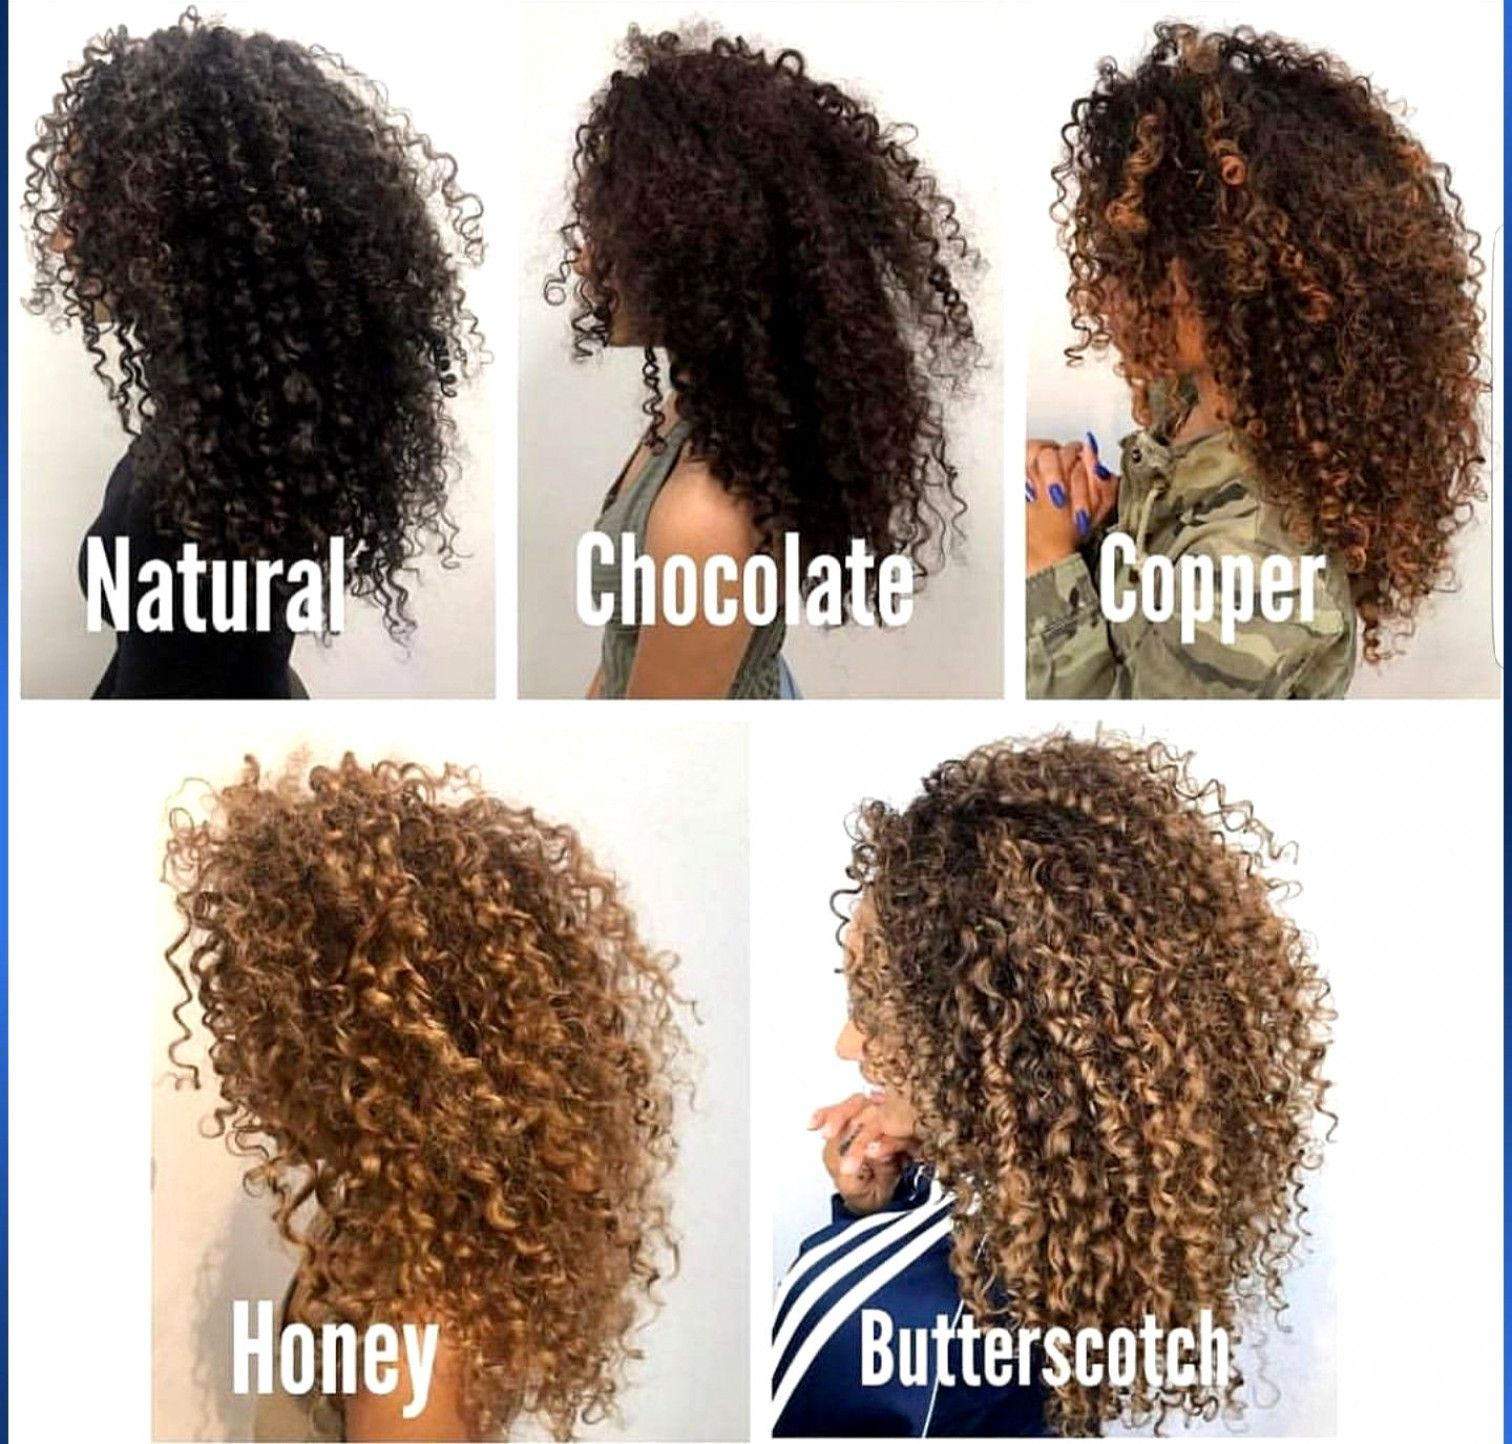 Hair Color Ideas For Natural Curly Hair Longcurlyhair Hair Styles Curly Hair Styles Dyed Curly Hair